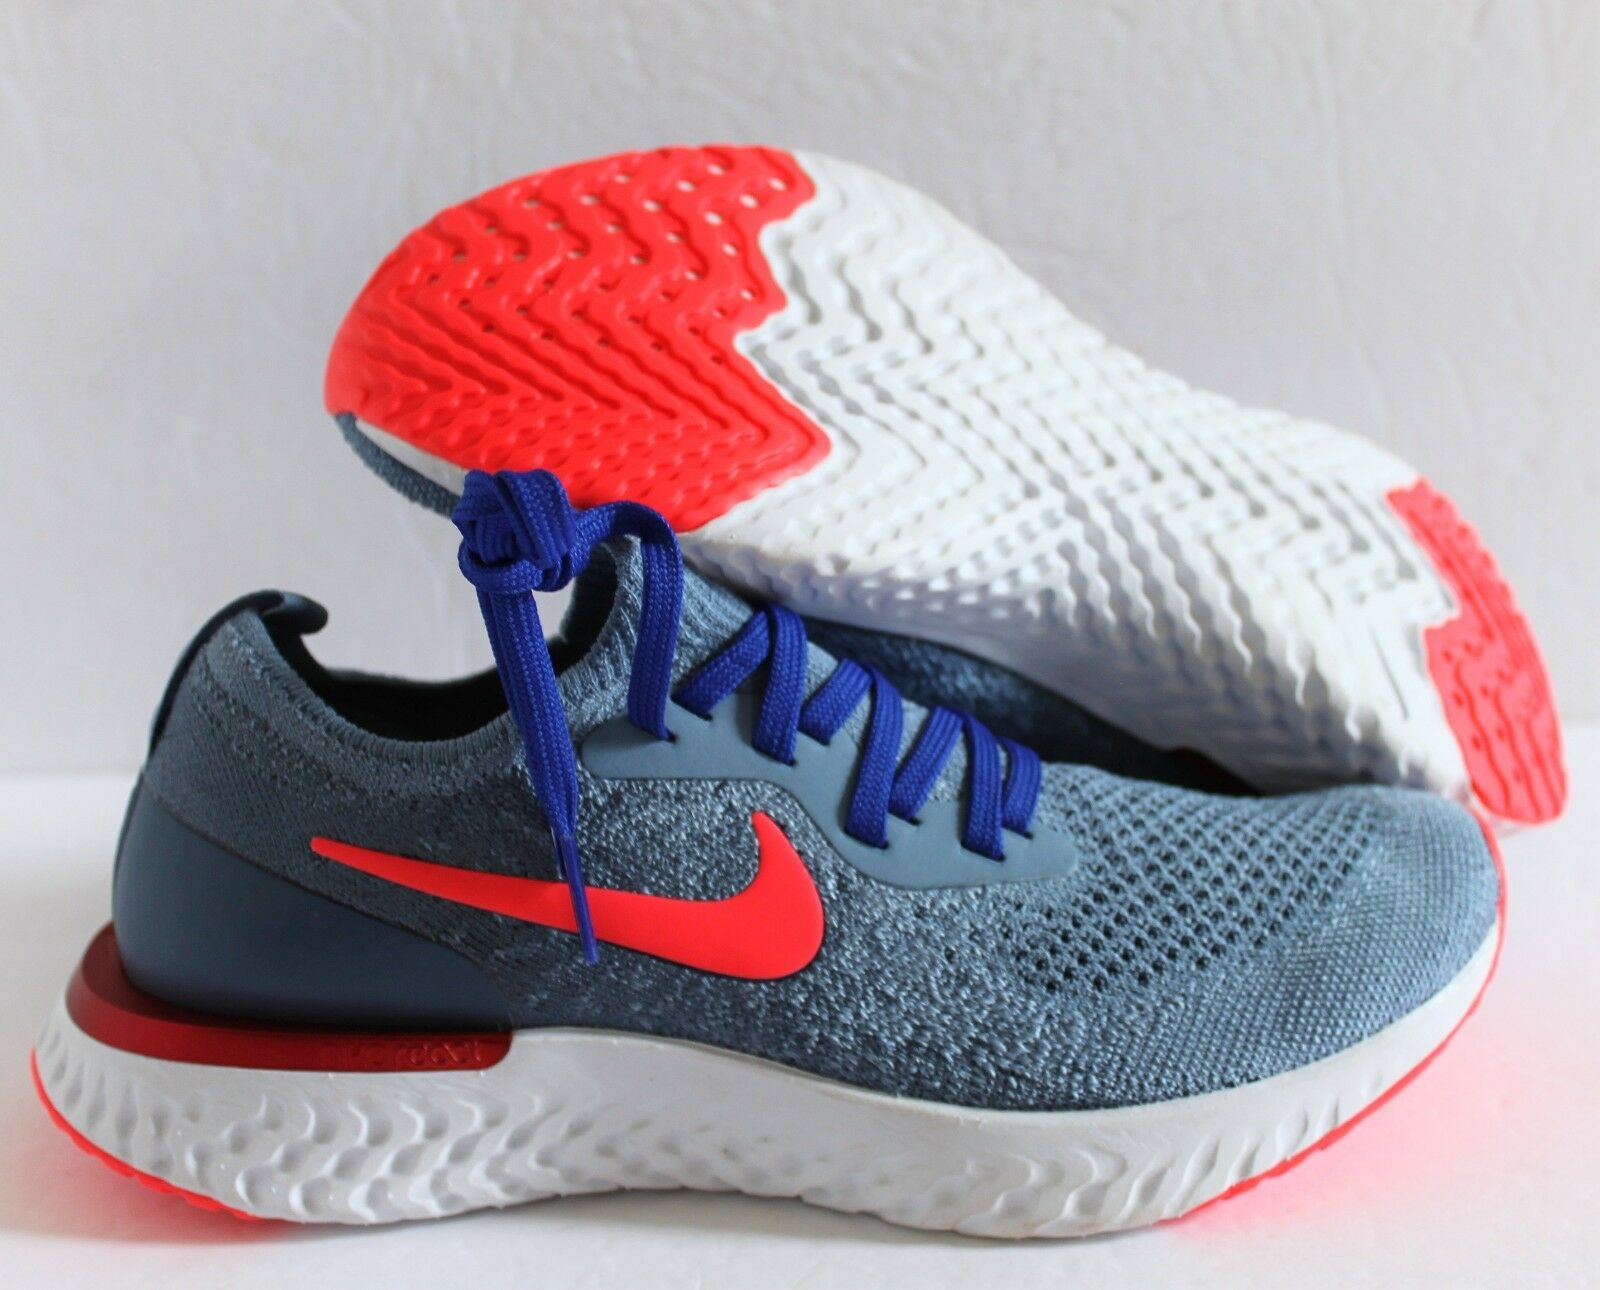 NIKE WOMEN EPIC REACT FLYKNIT ID blueE-CRIMSON-WHITE SZ 6 [AJ7286-991]